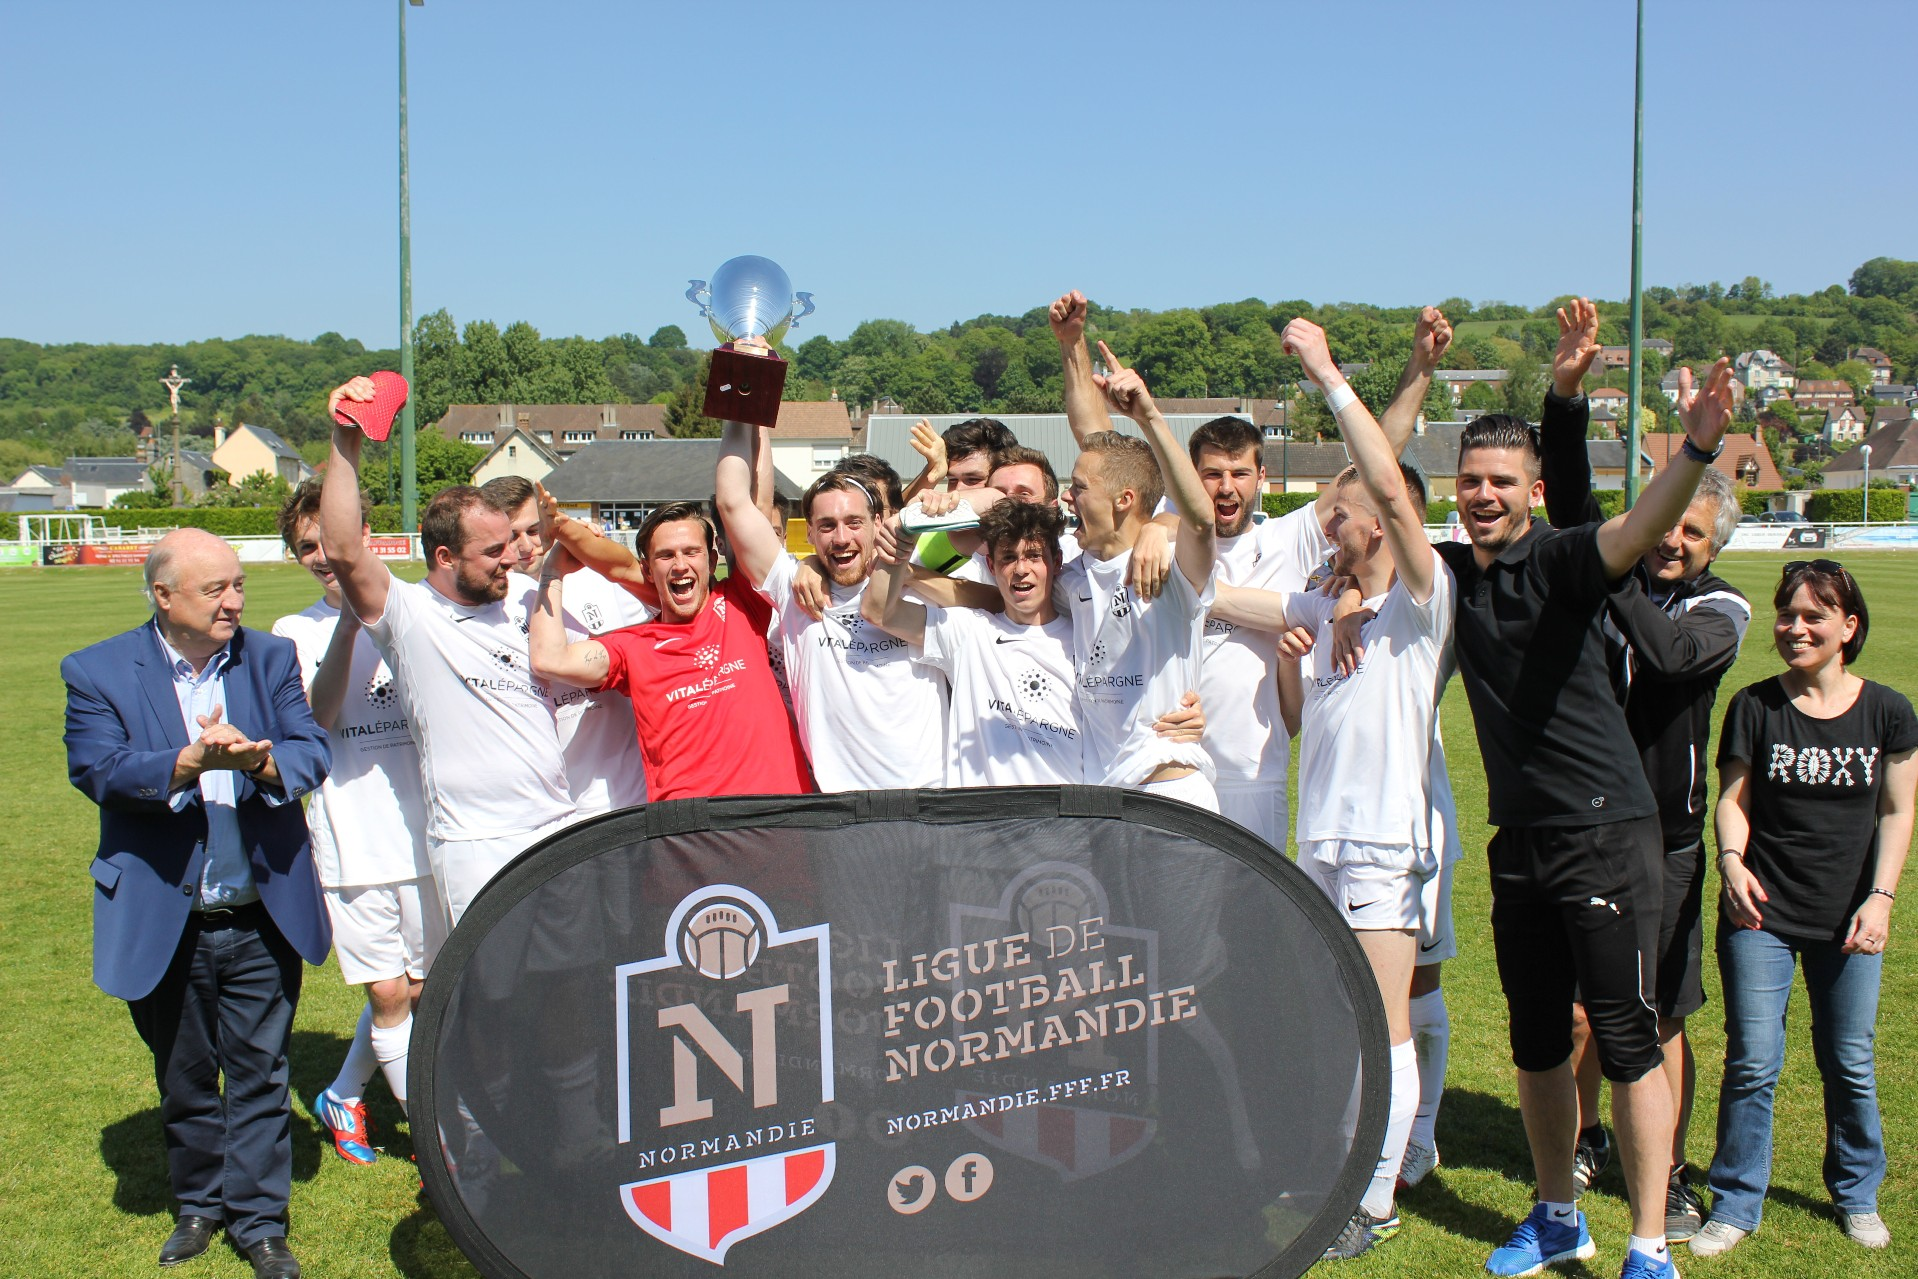 Fff football normandie